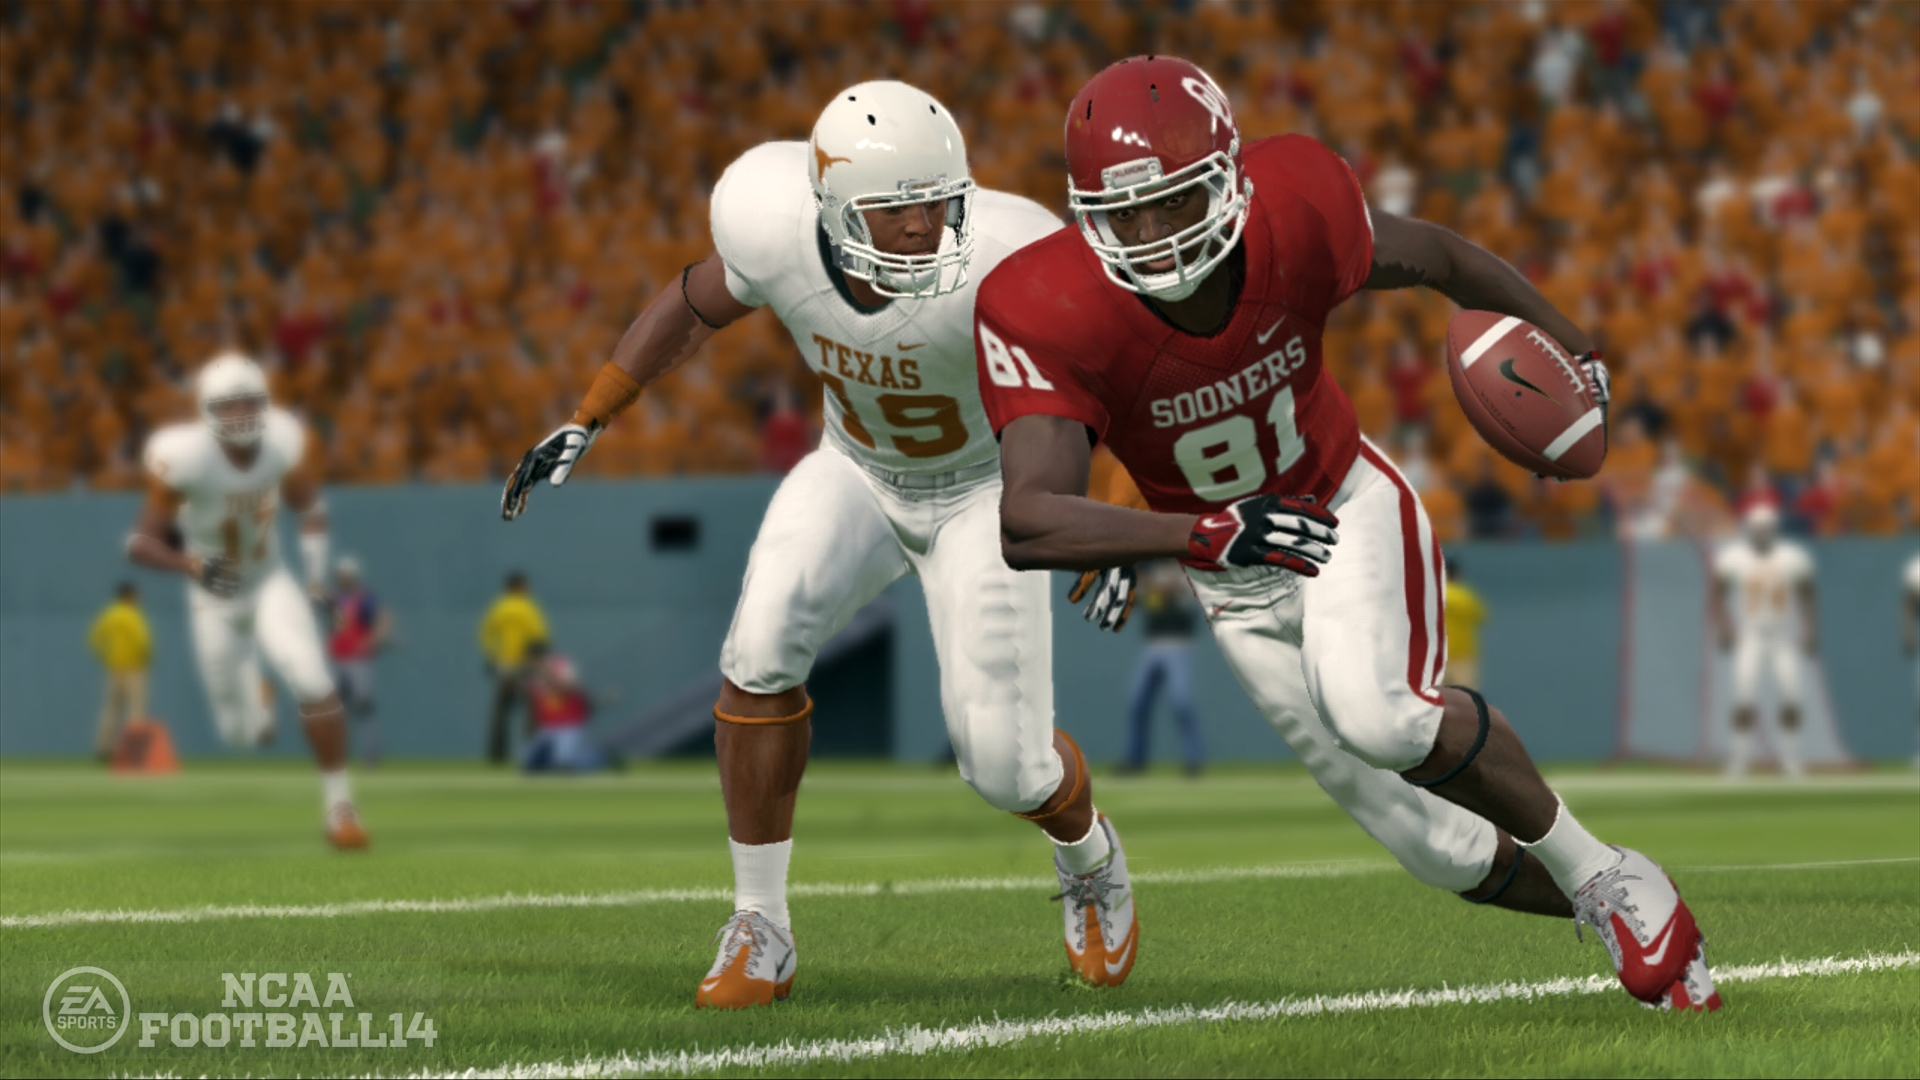 EA 'would jump for the opportunity' to revive NCAA Football series, CEO says